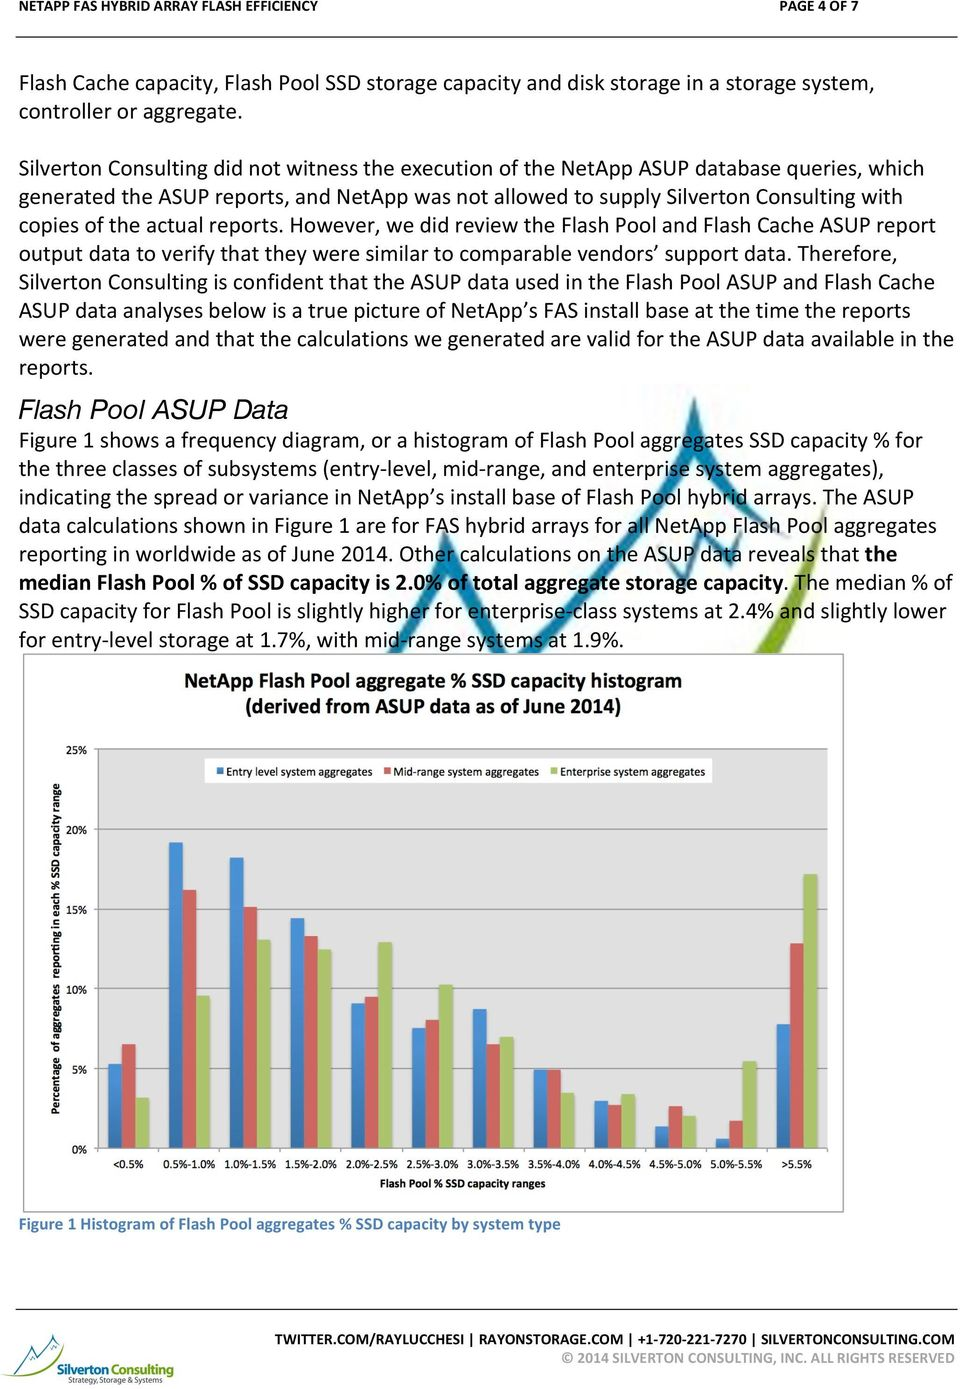 actual reports. However, we did review the Flash Pool and Flash Cache ASUP report output data to verify that they were similar to comparable vendors support data.